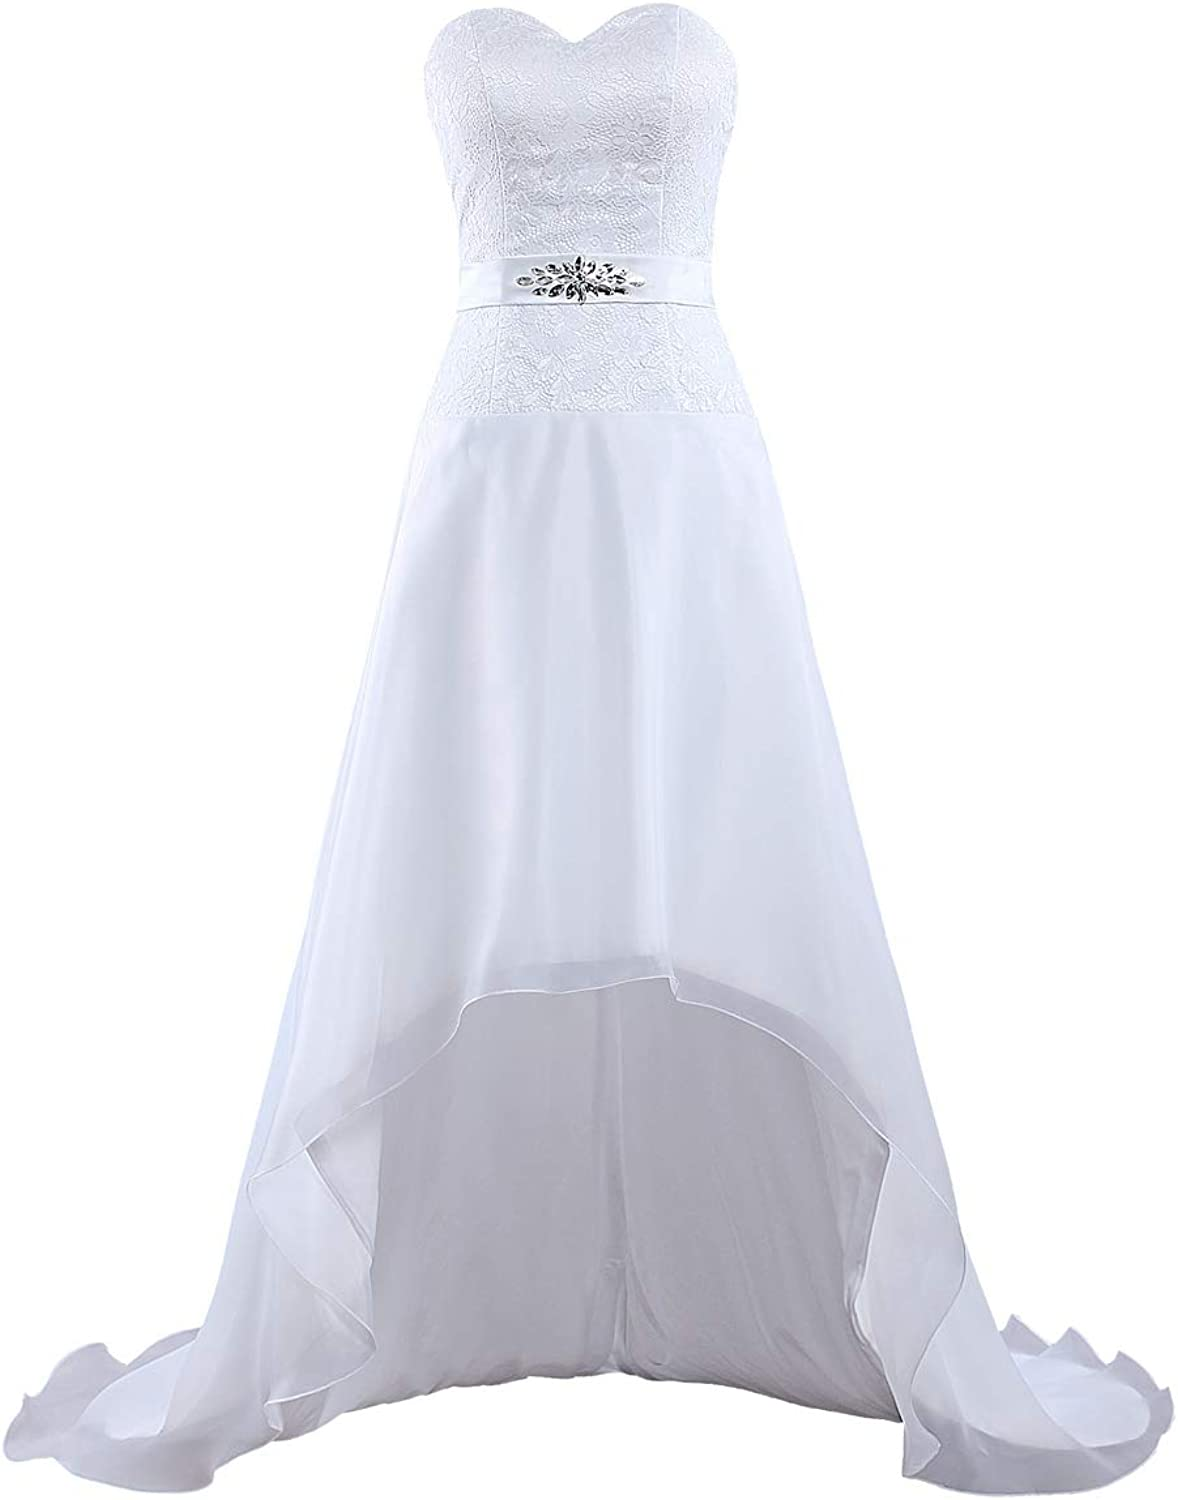 ANTS Women's Strapless Organza Lace Wedding Dresses High Low Gown